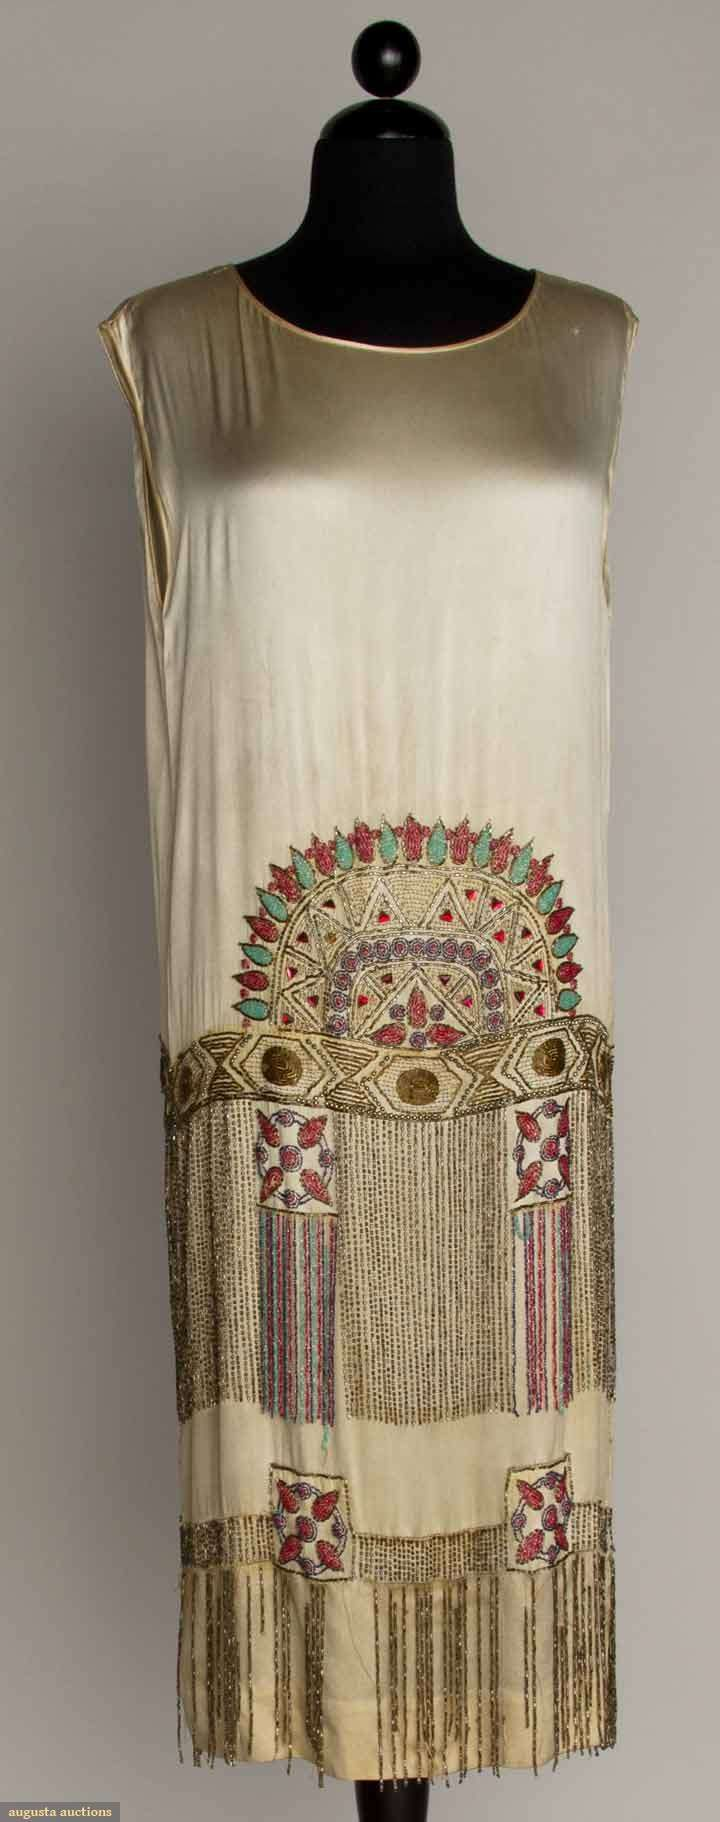 Beaded White Flapper Dress, 1920s, Augusta Auctions, November 13, 2013 - NYC